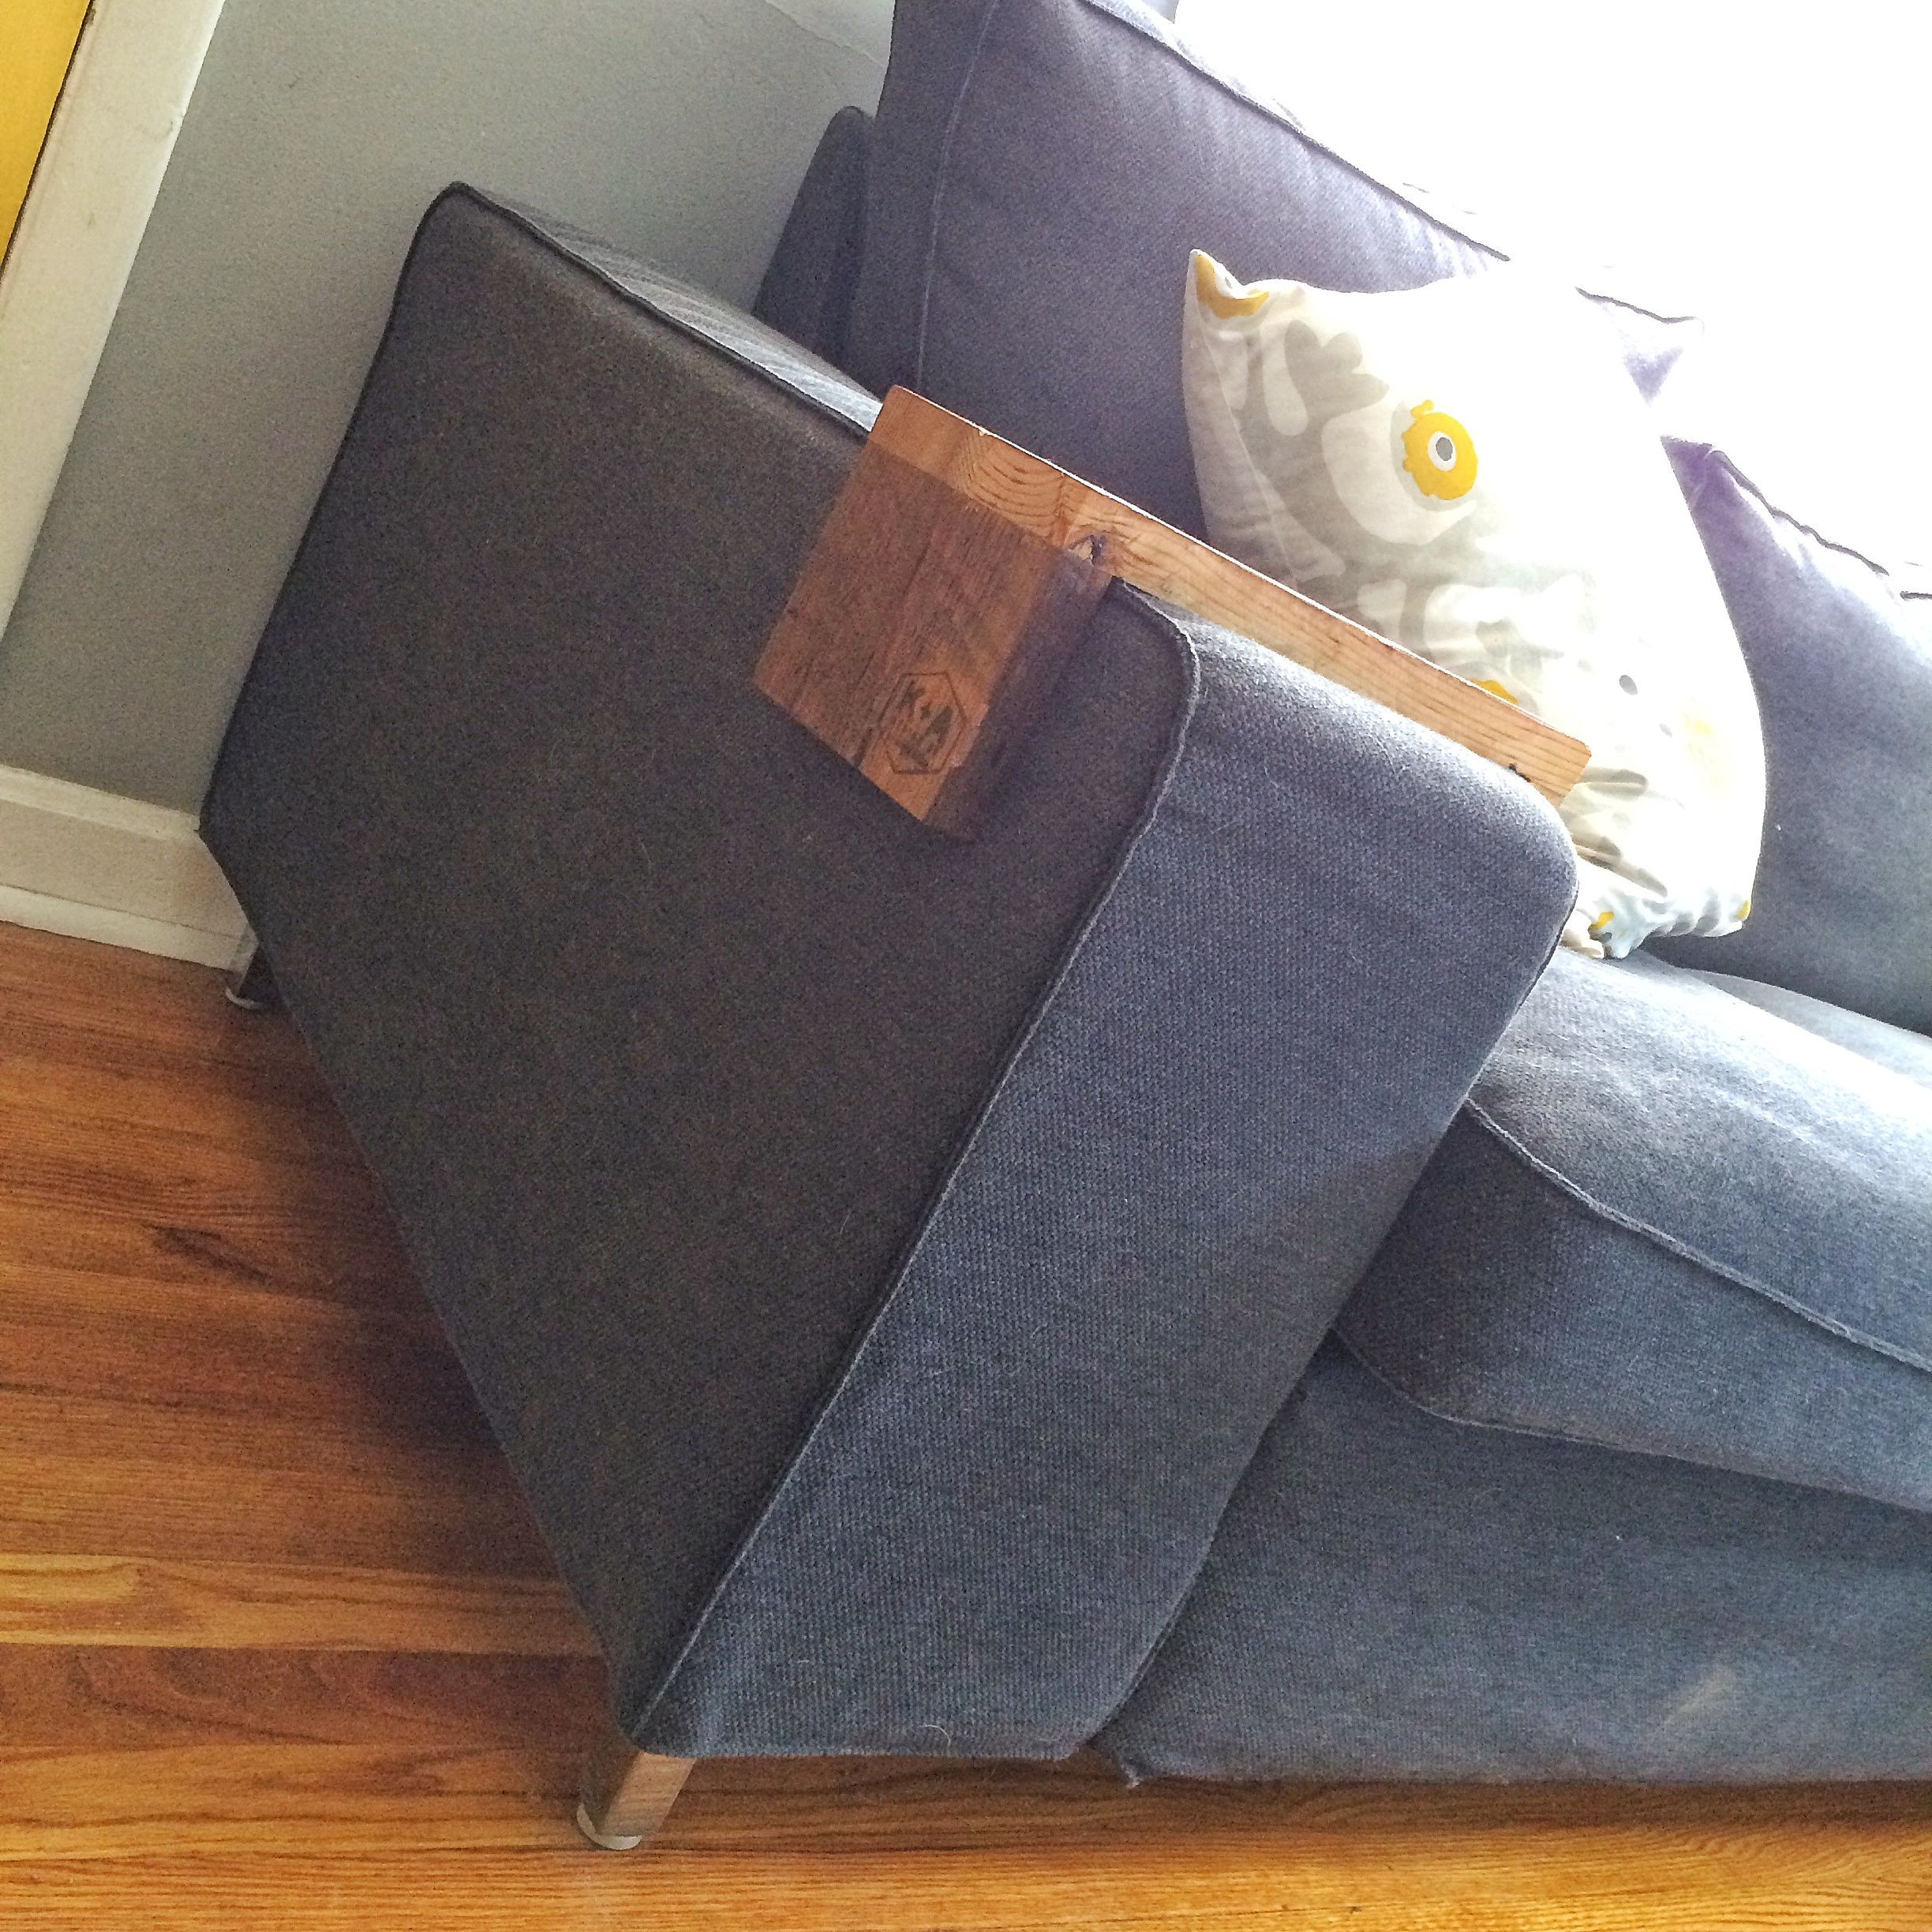 Sofa Arm Wrap Uk In Arabic Kivik Couch With Besta Legs And Wood Ikea Hacks